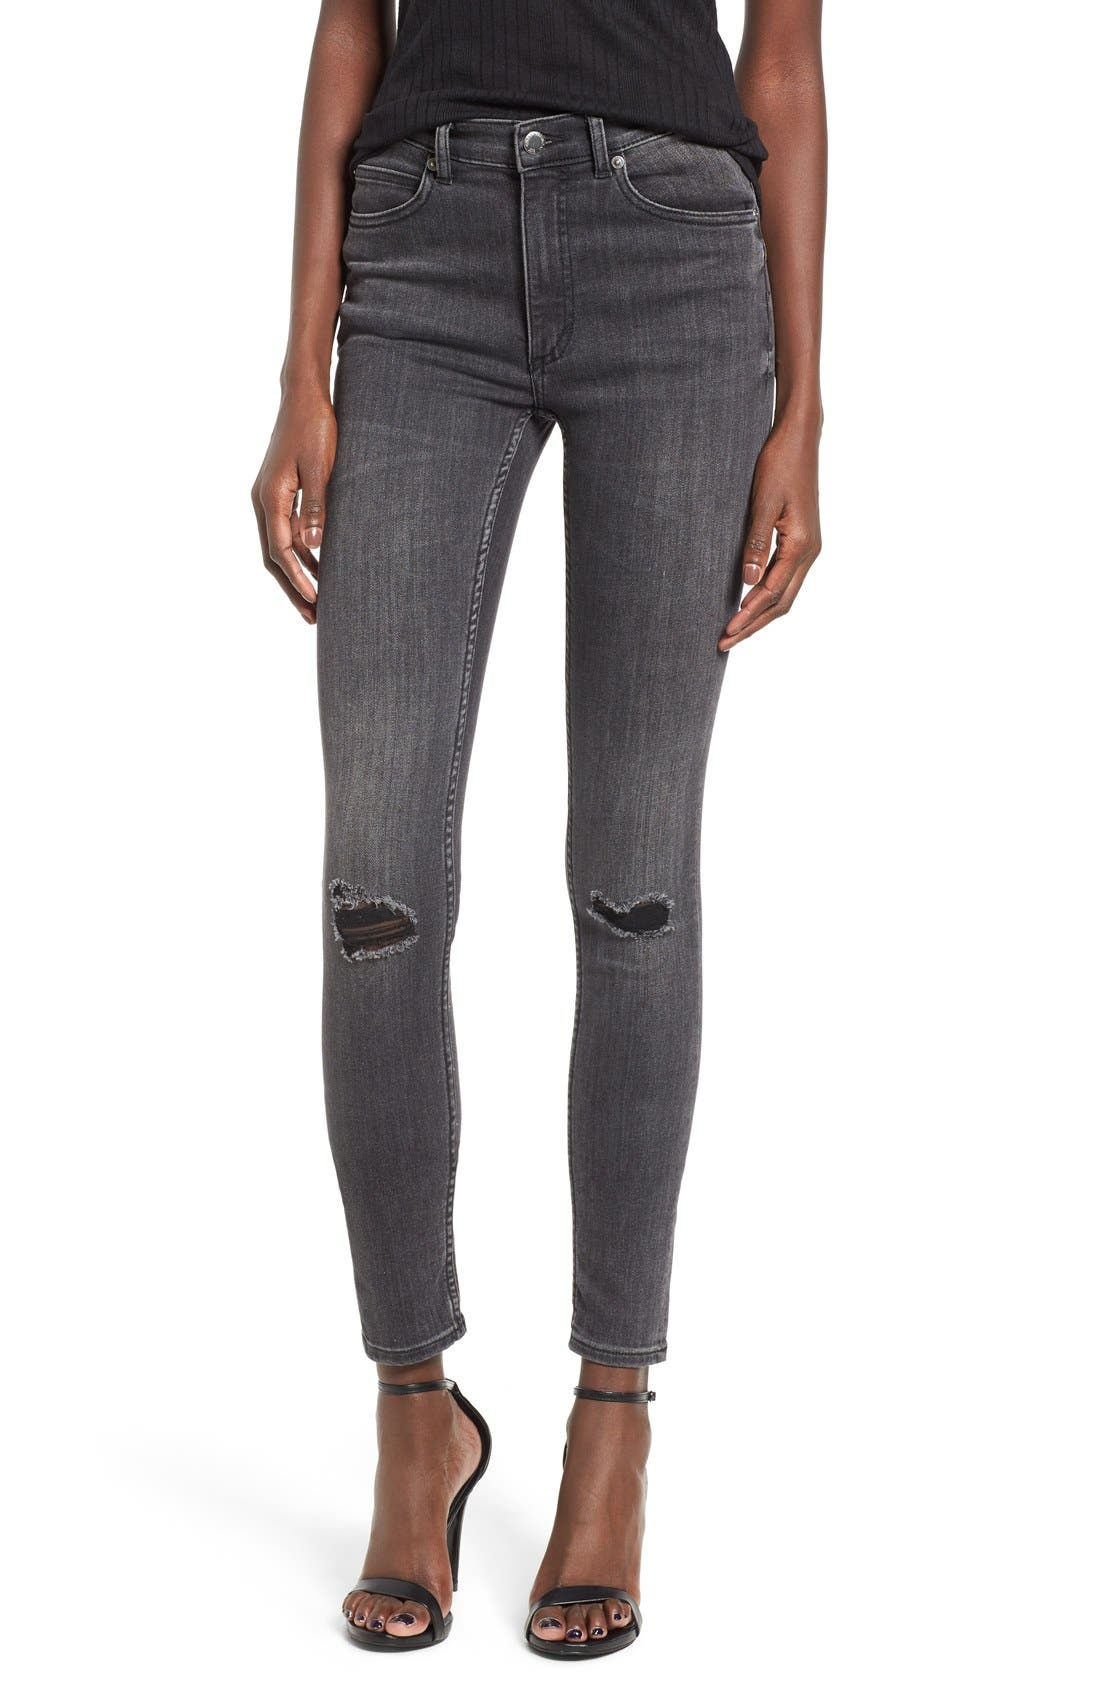 Alternate Image 1 Selected - Cheap Monday Second Skin High Rise Skinny Jeans (Shadow)